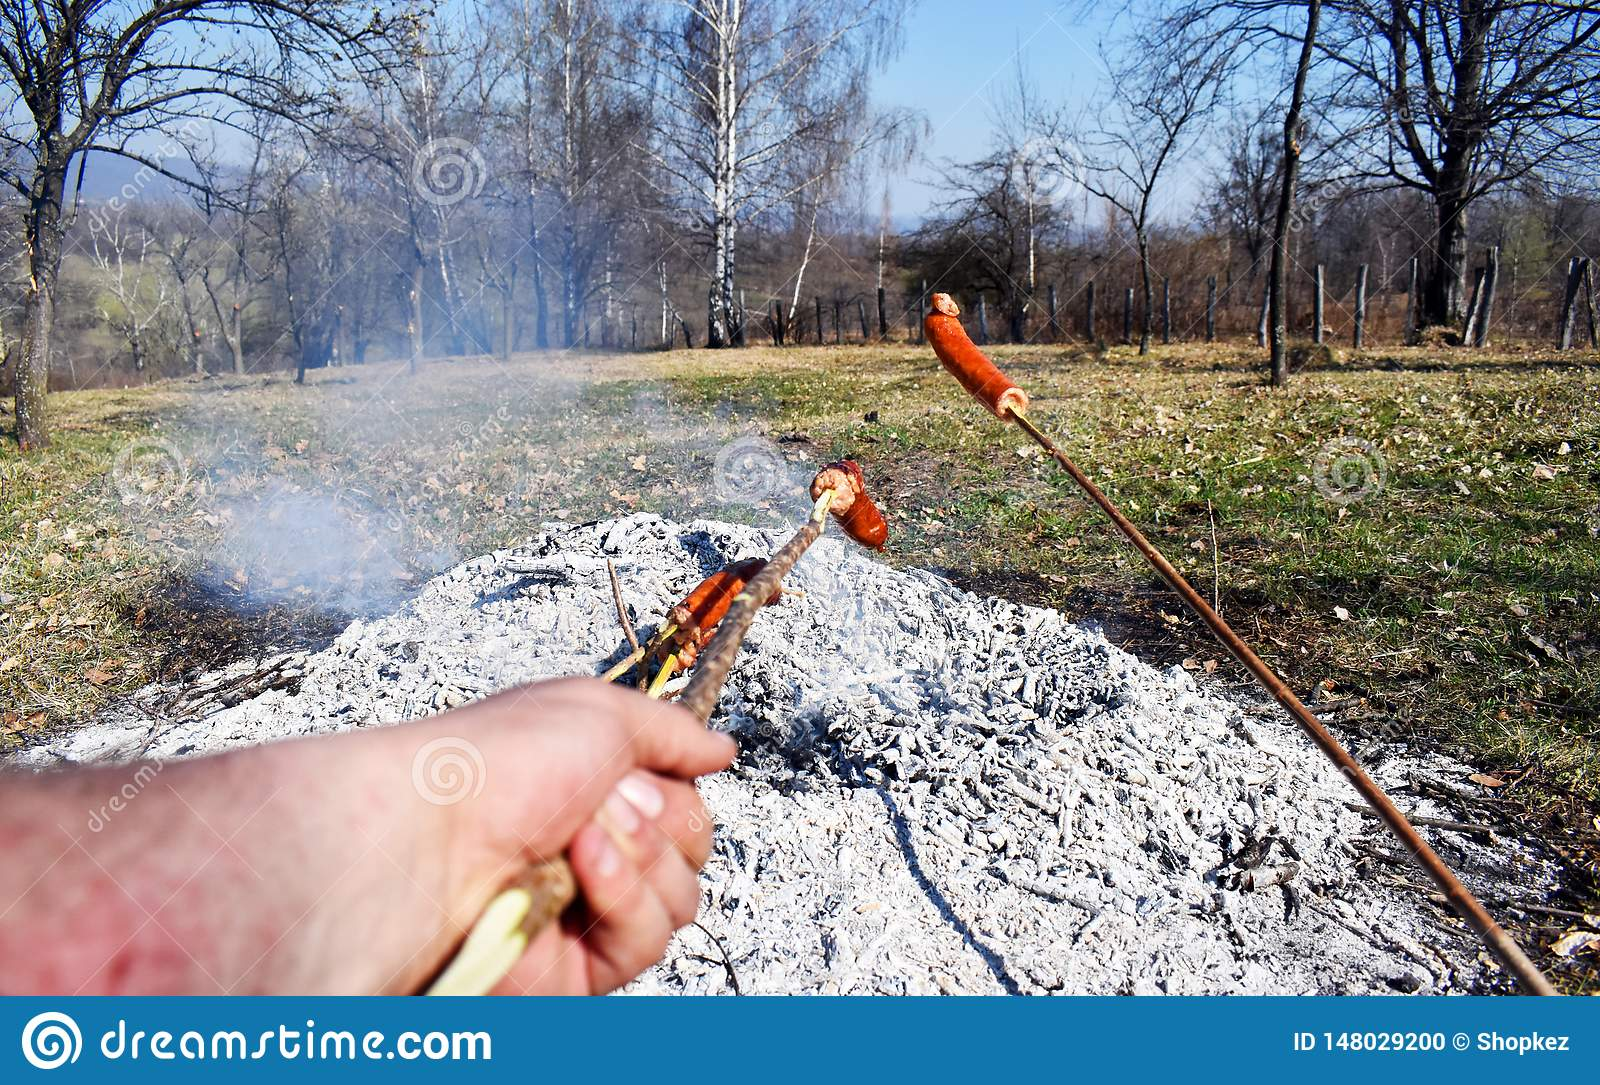 Sausage skewers are heated by grilling on a special slow fire for a long time to eat as a family breakfast on holiday and prepared